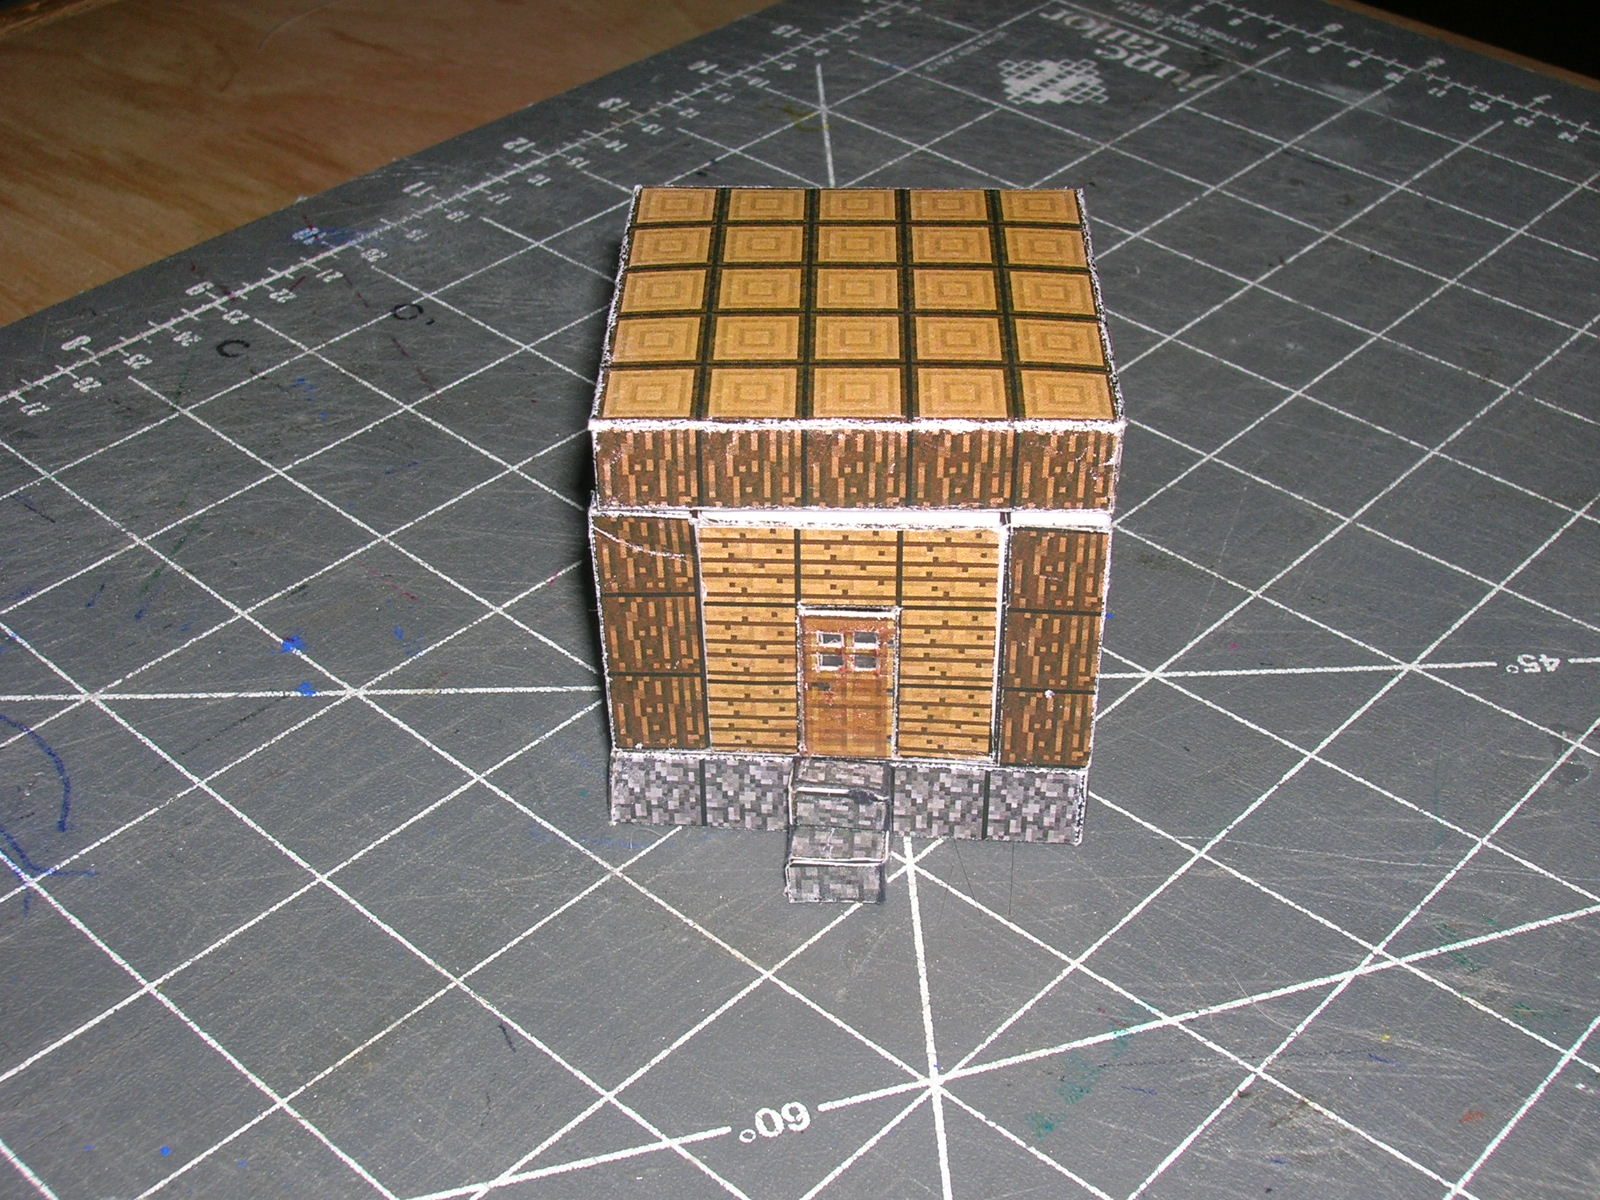 Npc village buildings by coltcoyote on deviantart apps directories - Proto Papercraft Hut1 By Coltcoyote Proto Papercraft Hut1 By Coltcoyote Proto Papercraft Hut1 By Coltcoyote